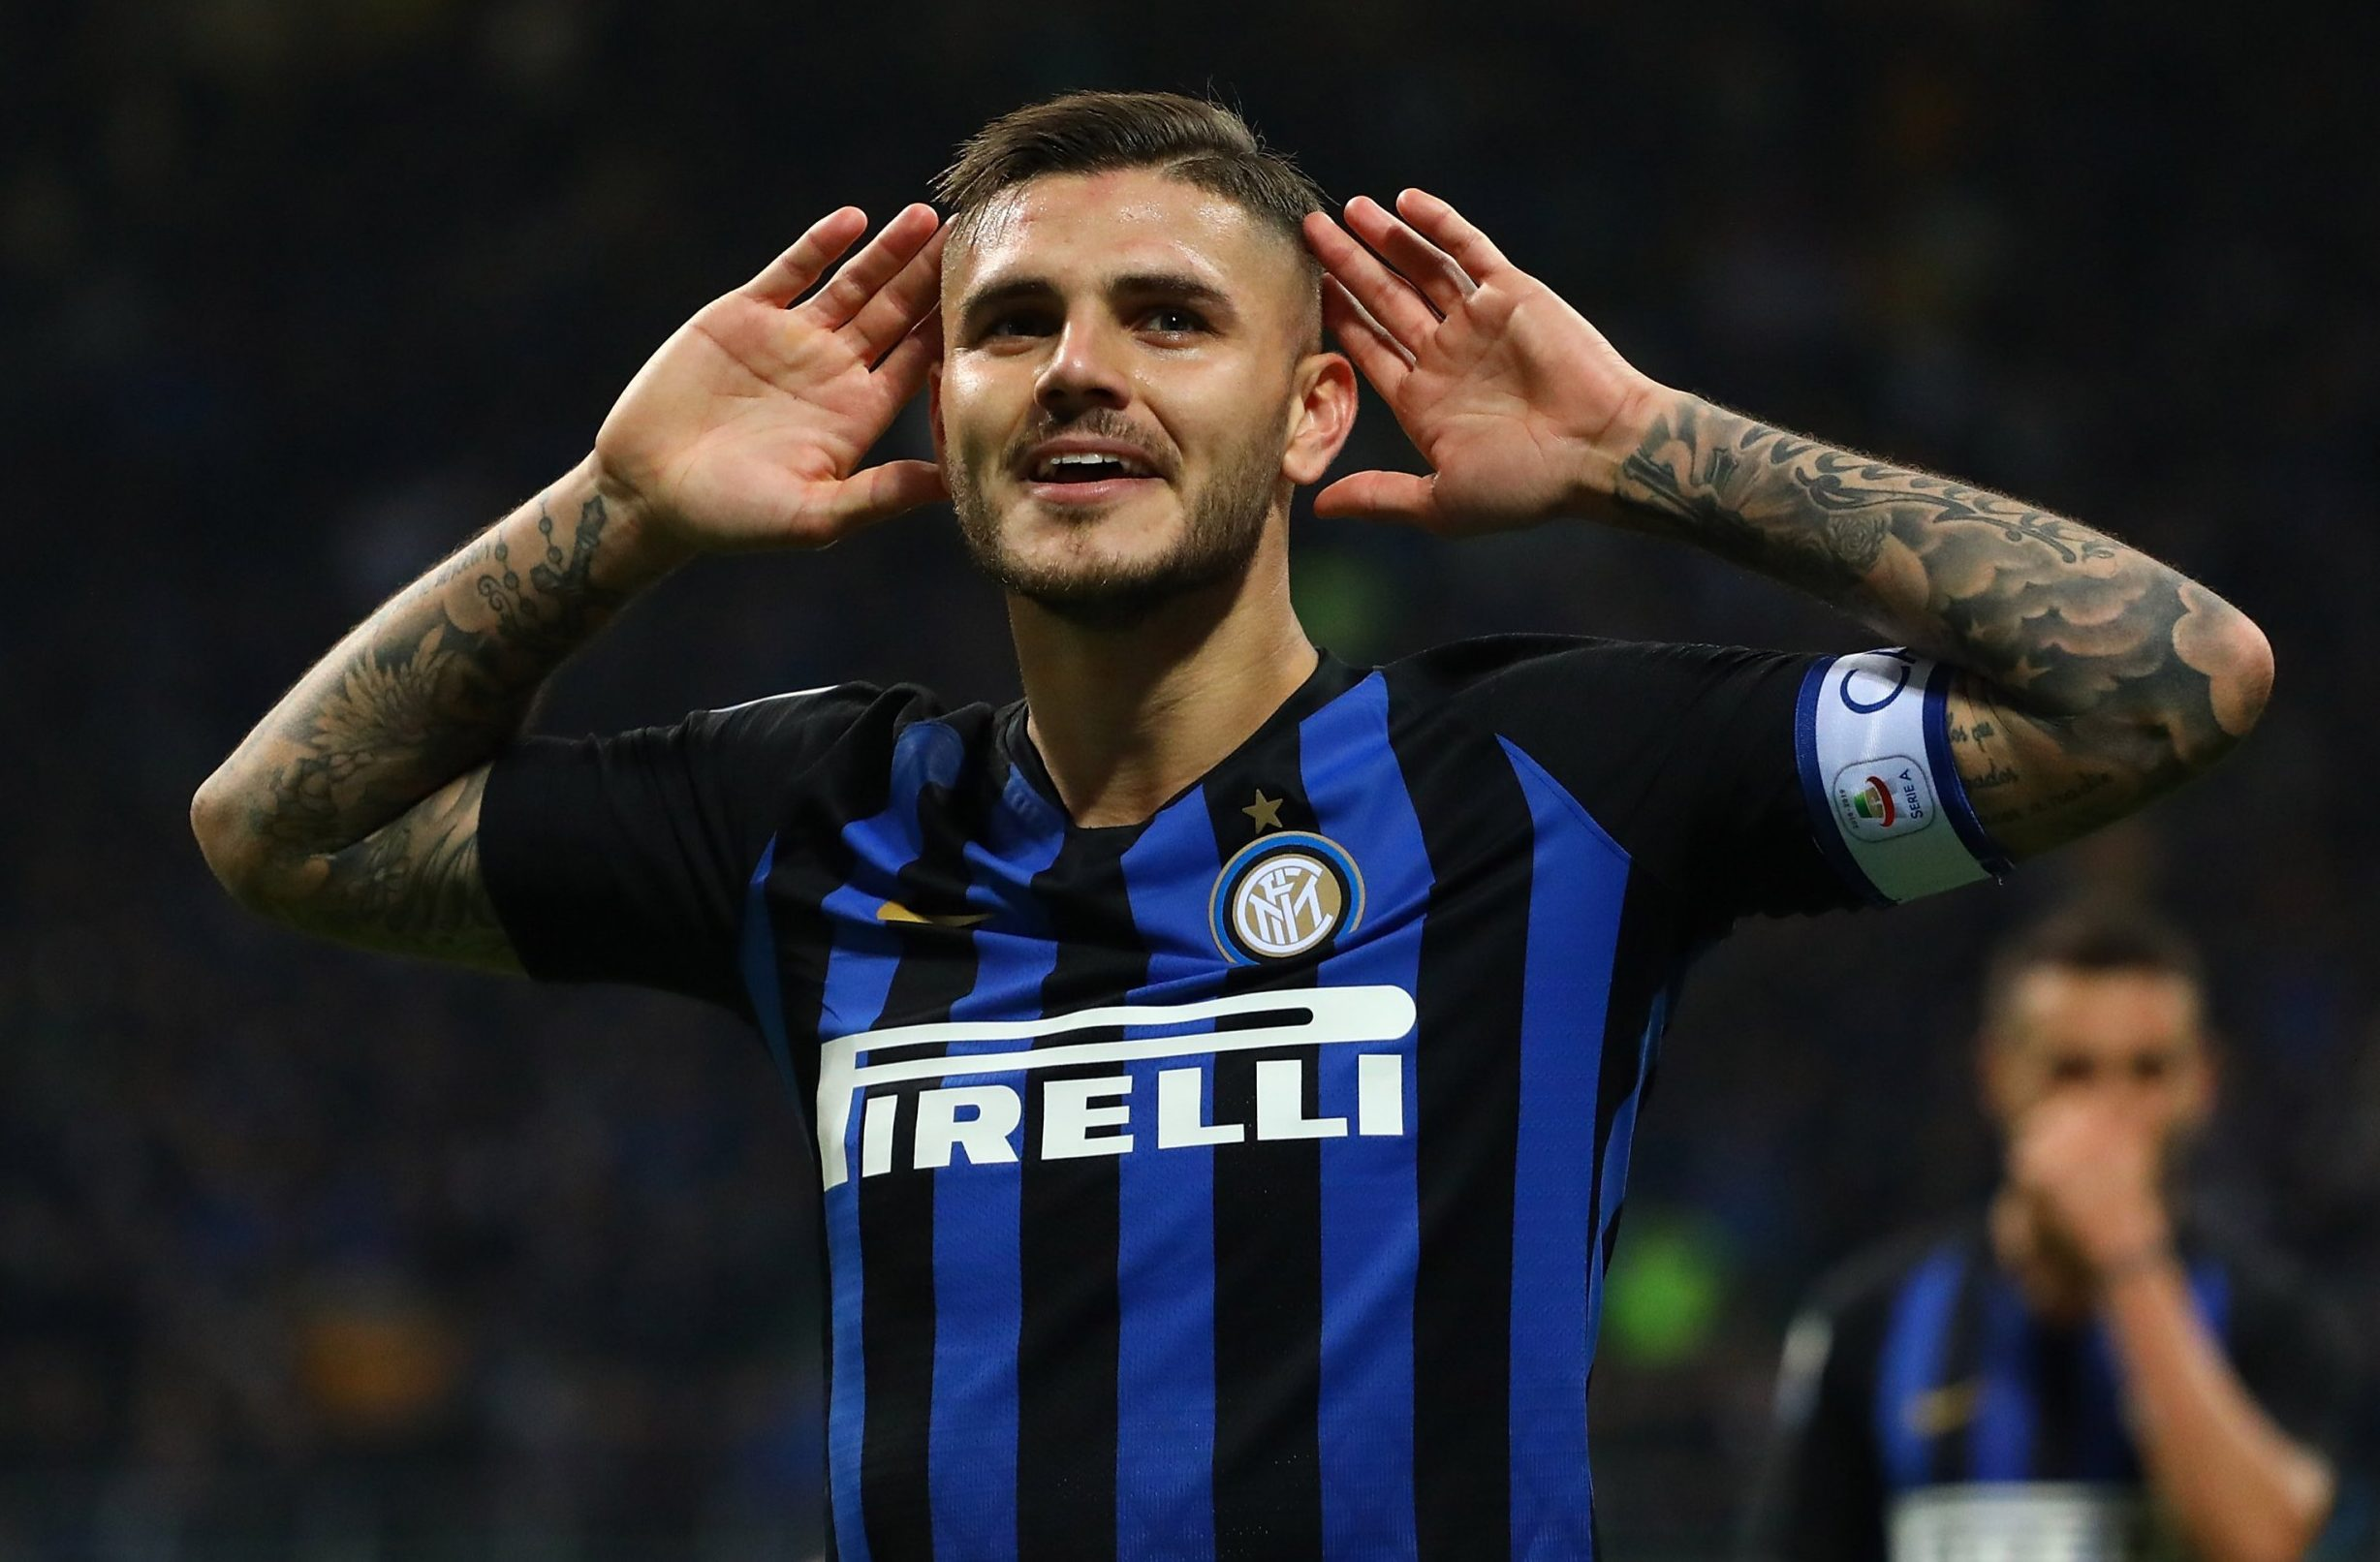 MILAN, ITALY - OCTOBER 21: Mauro Icardi of FC Internazionale celebrates after scoring the opening goal during the Serie A match between FC Internazionale and AC Milan at Stadio Giuseppe Meazza on October 21, 2018 in Milan, Italy. (Photo by Marco Luzzani - Inter/Inter via Getty Images)